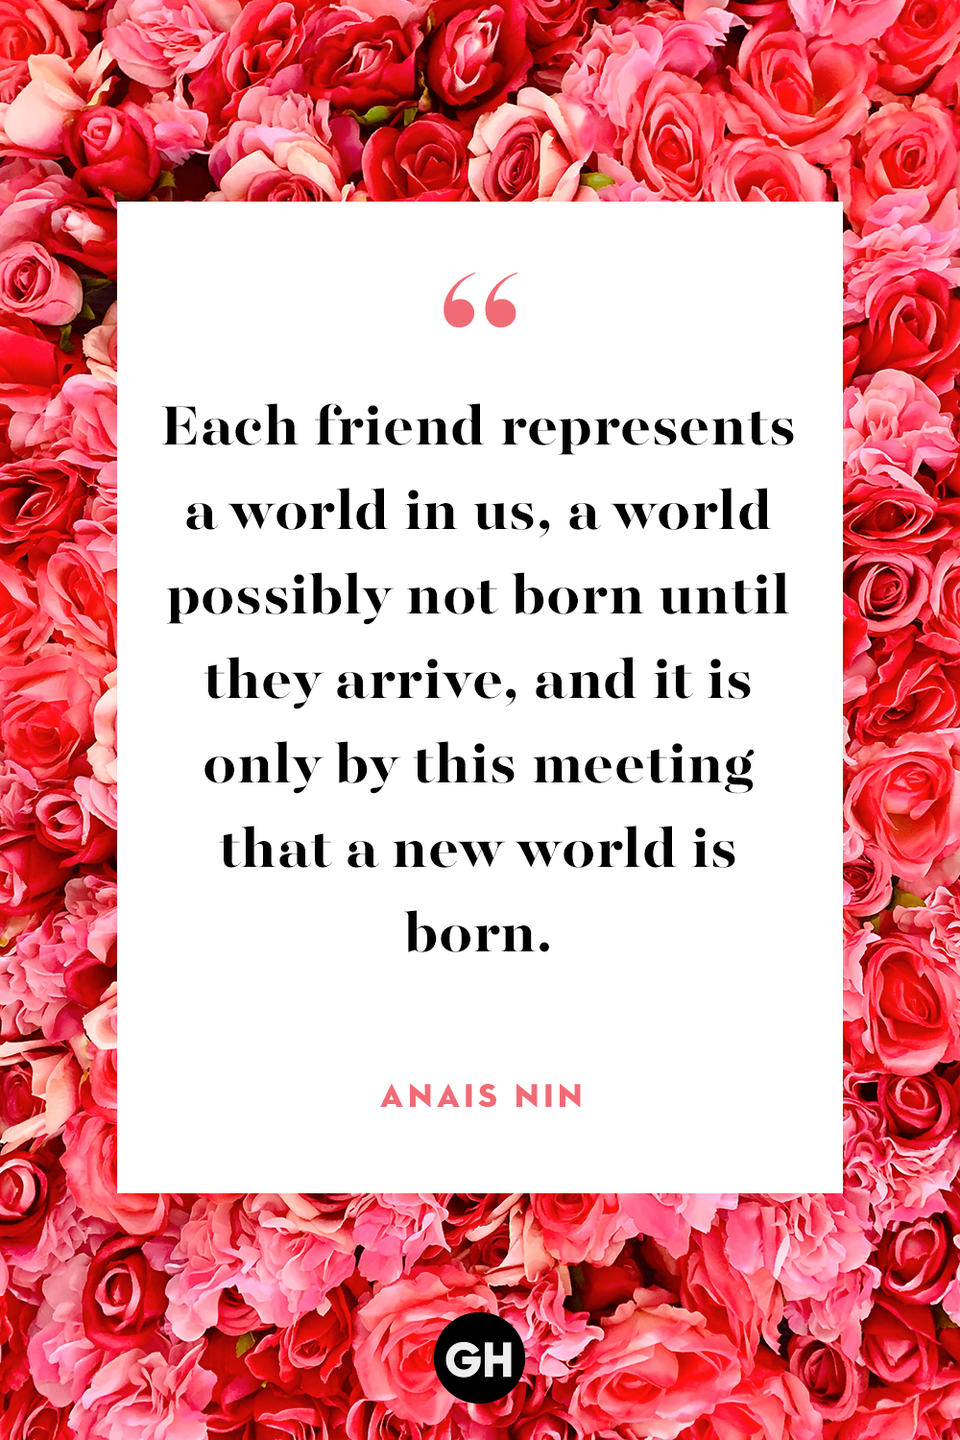 <p>Each friend represents a world in us, a world possibly not born until they arrive, and it is only by this meeting that a new world is born. </p>